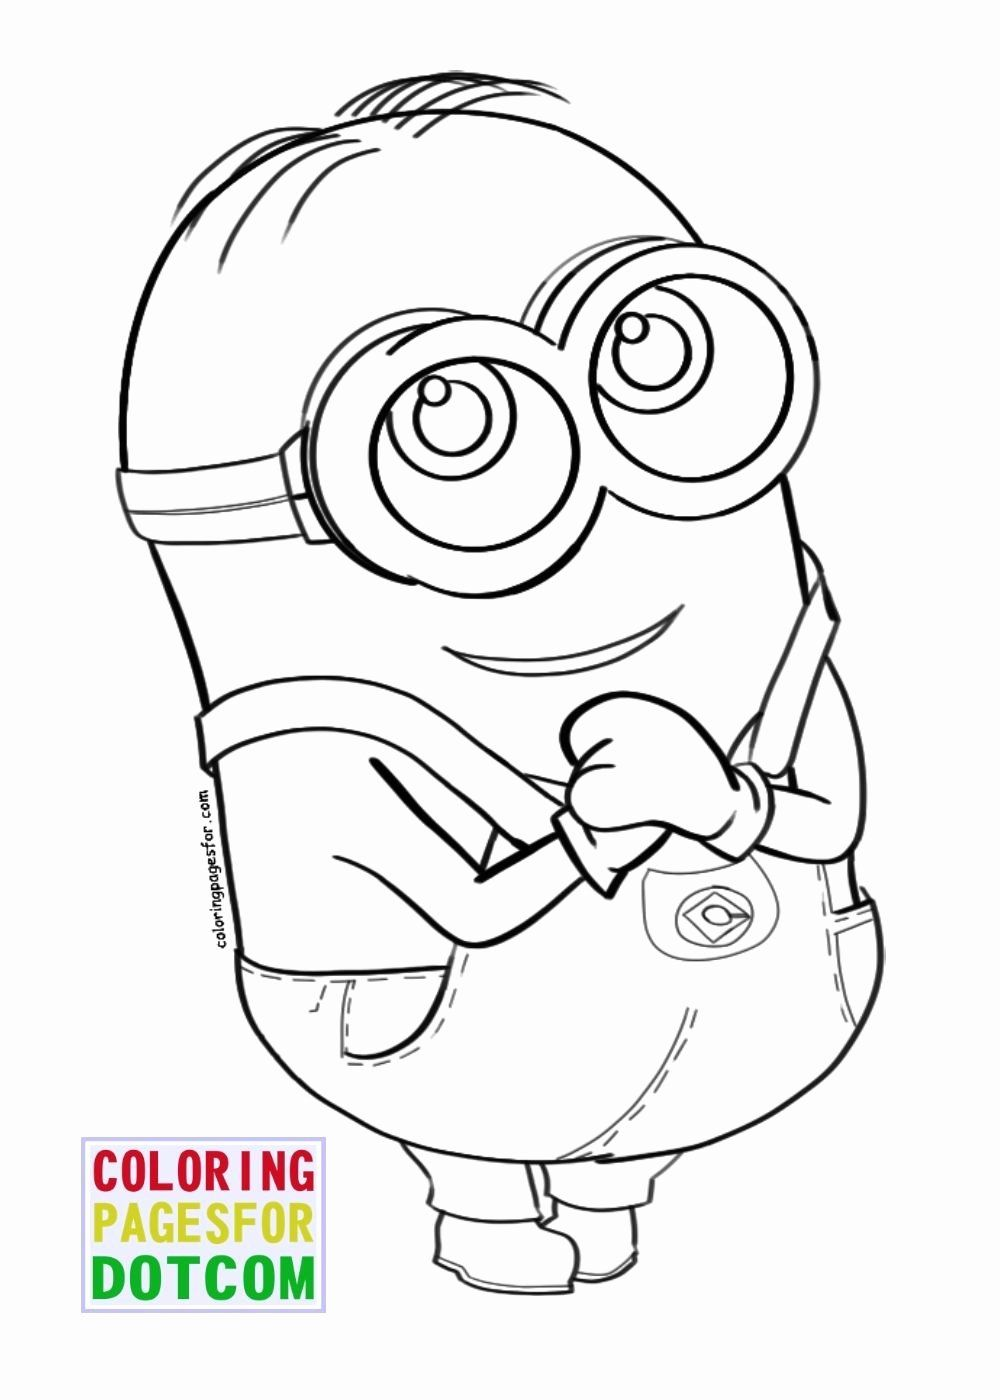 Animals Coloring Book Pdf Free Download Best Of Coloring Pages